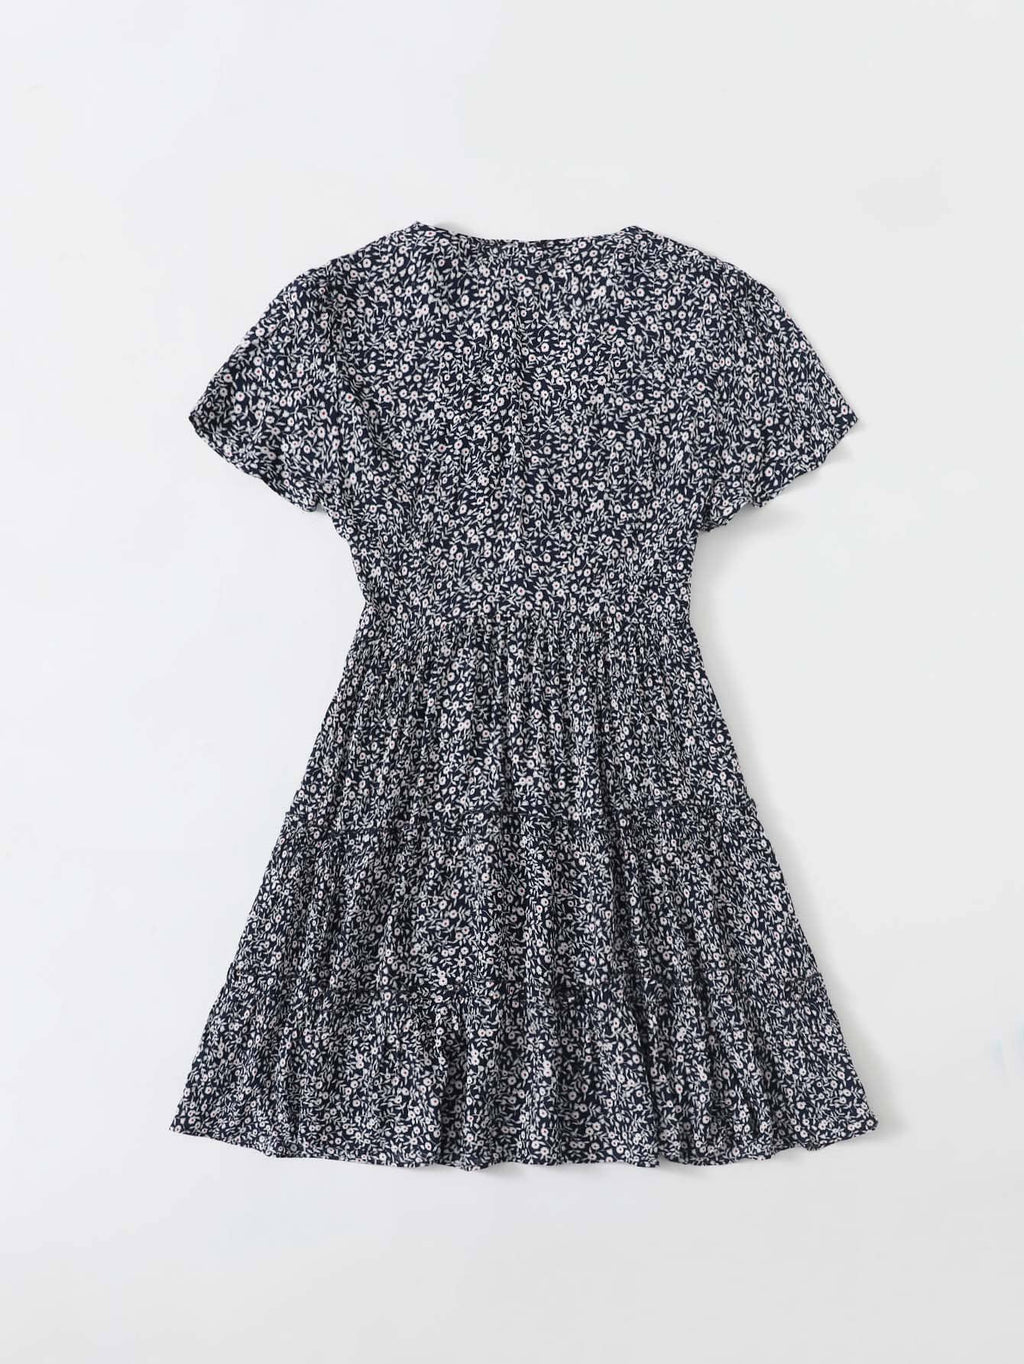 Plus Buttoned Front Frill Trim Ditsy Floral Dress - Curve+Plus - INS | Online Fashion Free Shipping Clothing, Dresses, Tops, Shoes - 2XL - 3XL - 4XL